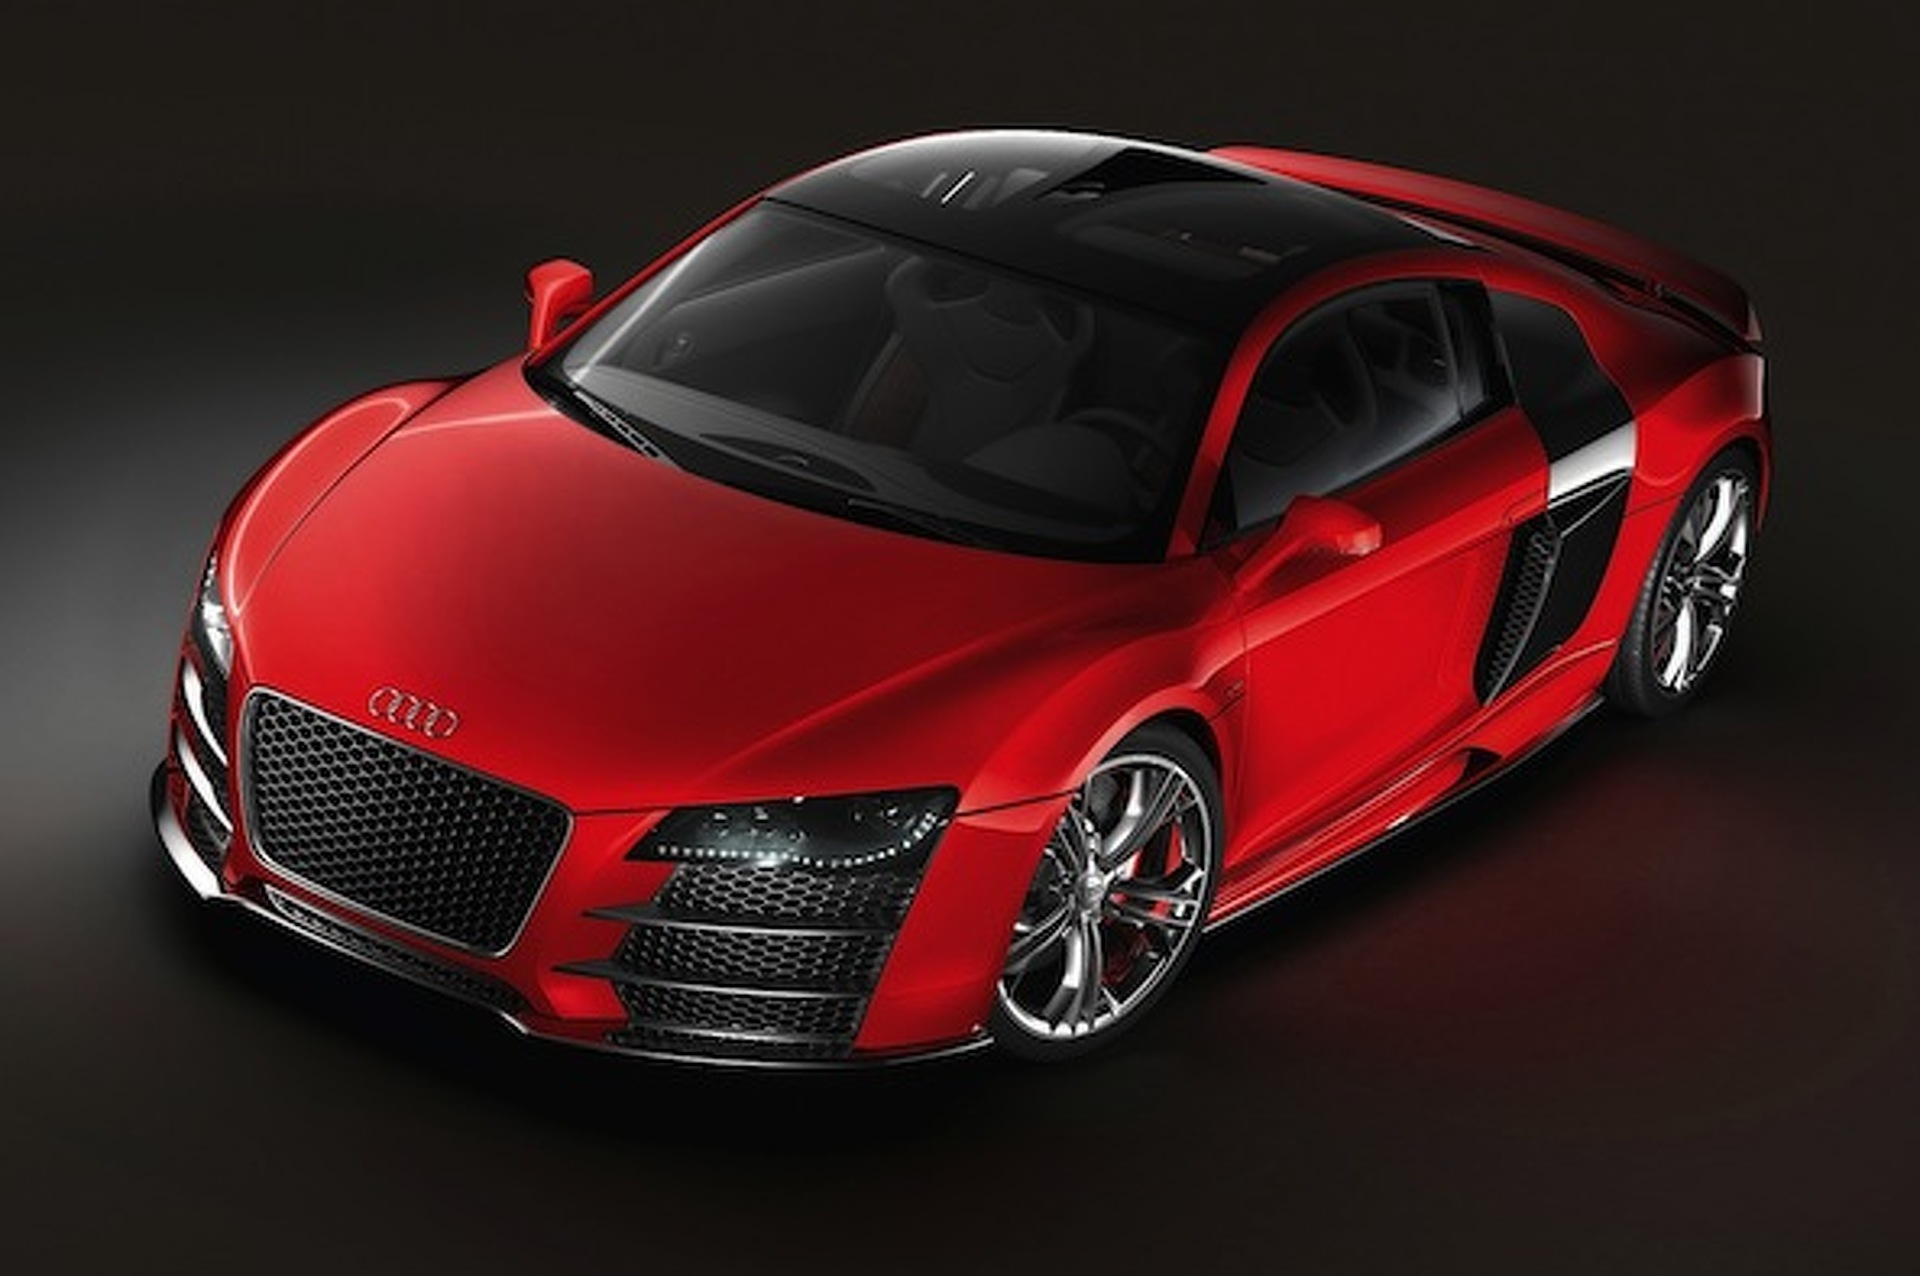 Wheels Wallpaper: Audi R8 TDI Le Mans Concept